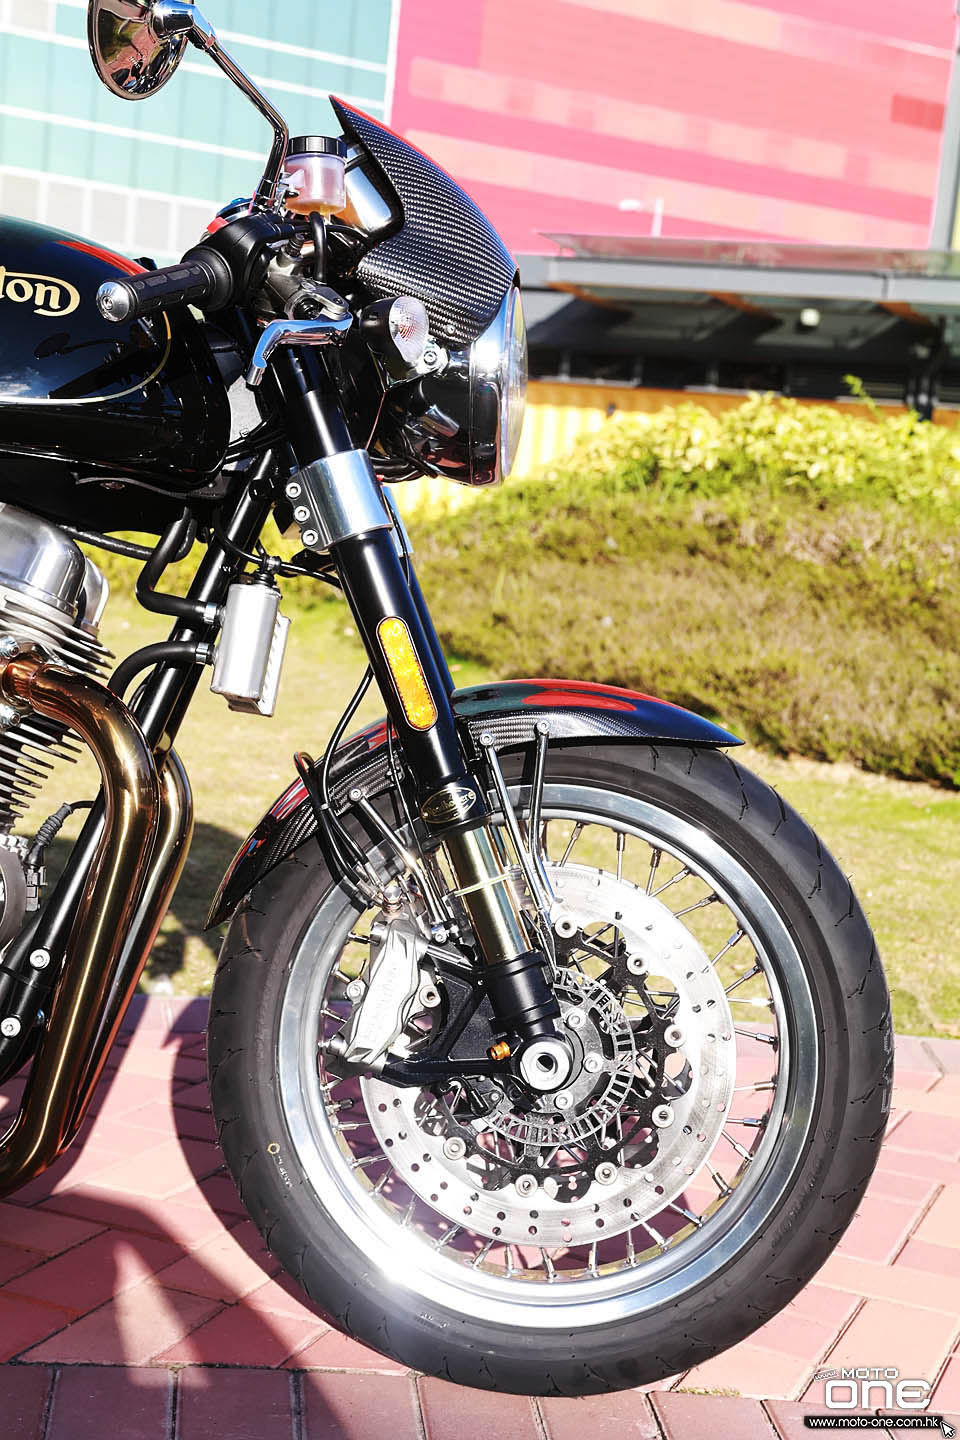 2018 NORTON COMMANDO 961 SPORT CAFE RACER California 50